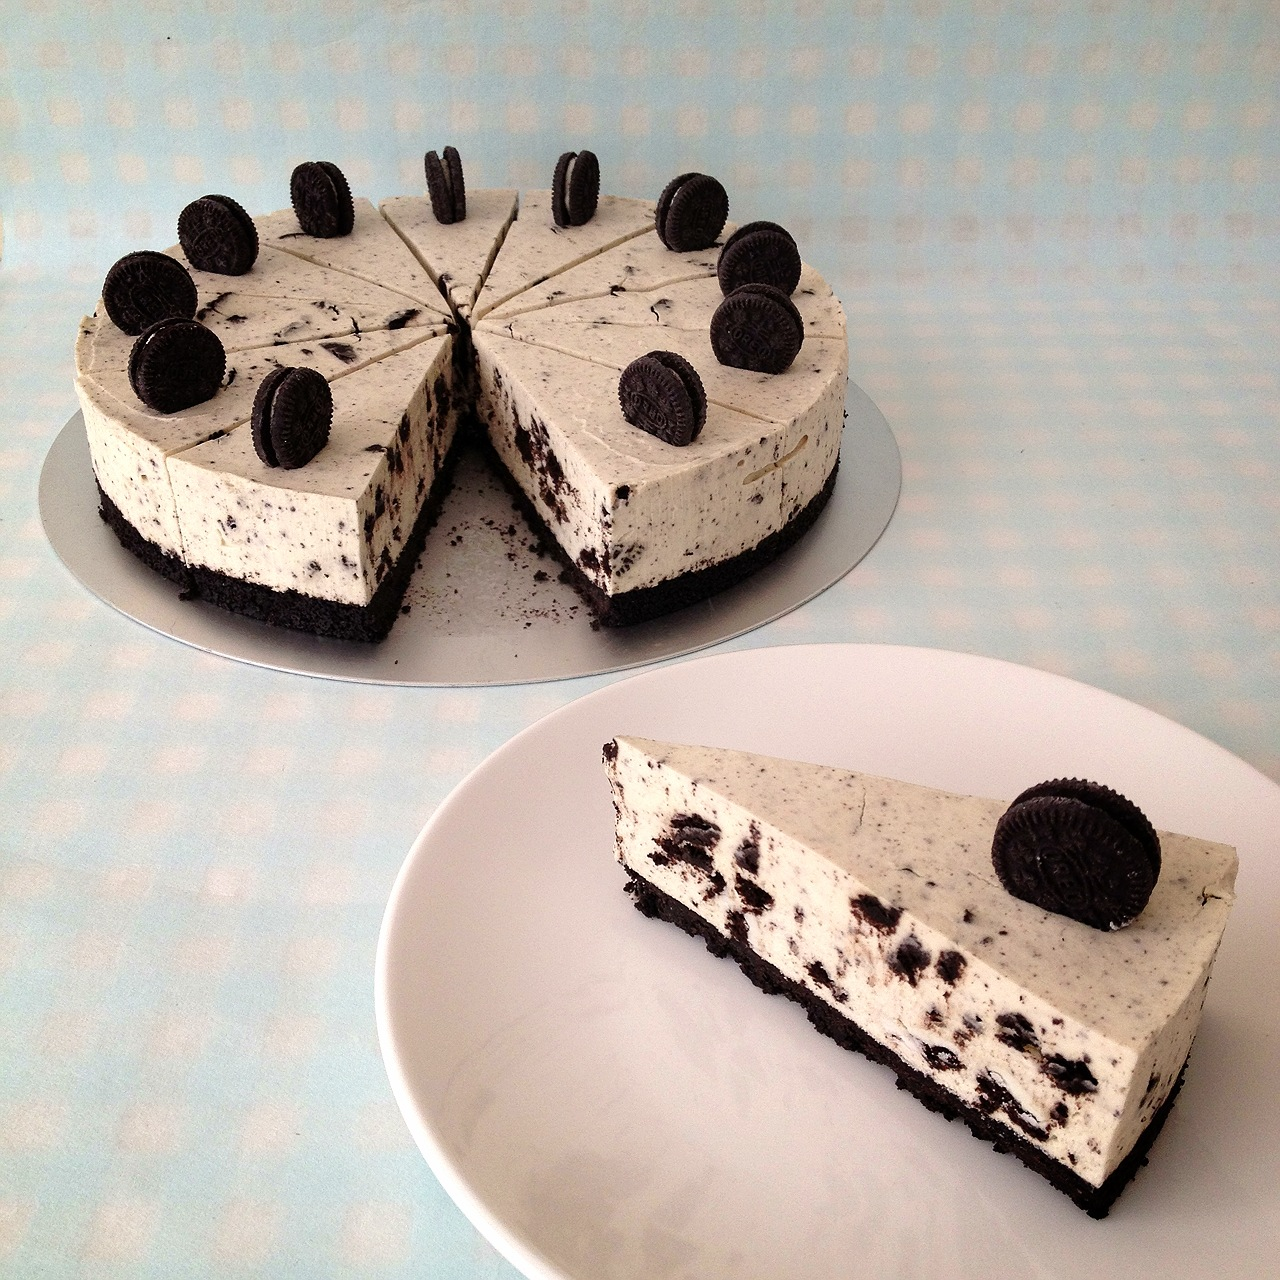 Oreo Cheesecake Kuchen Little Cake House Oreo And White Chocolate Cheesecake